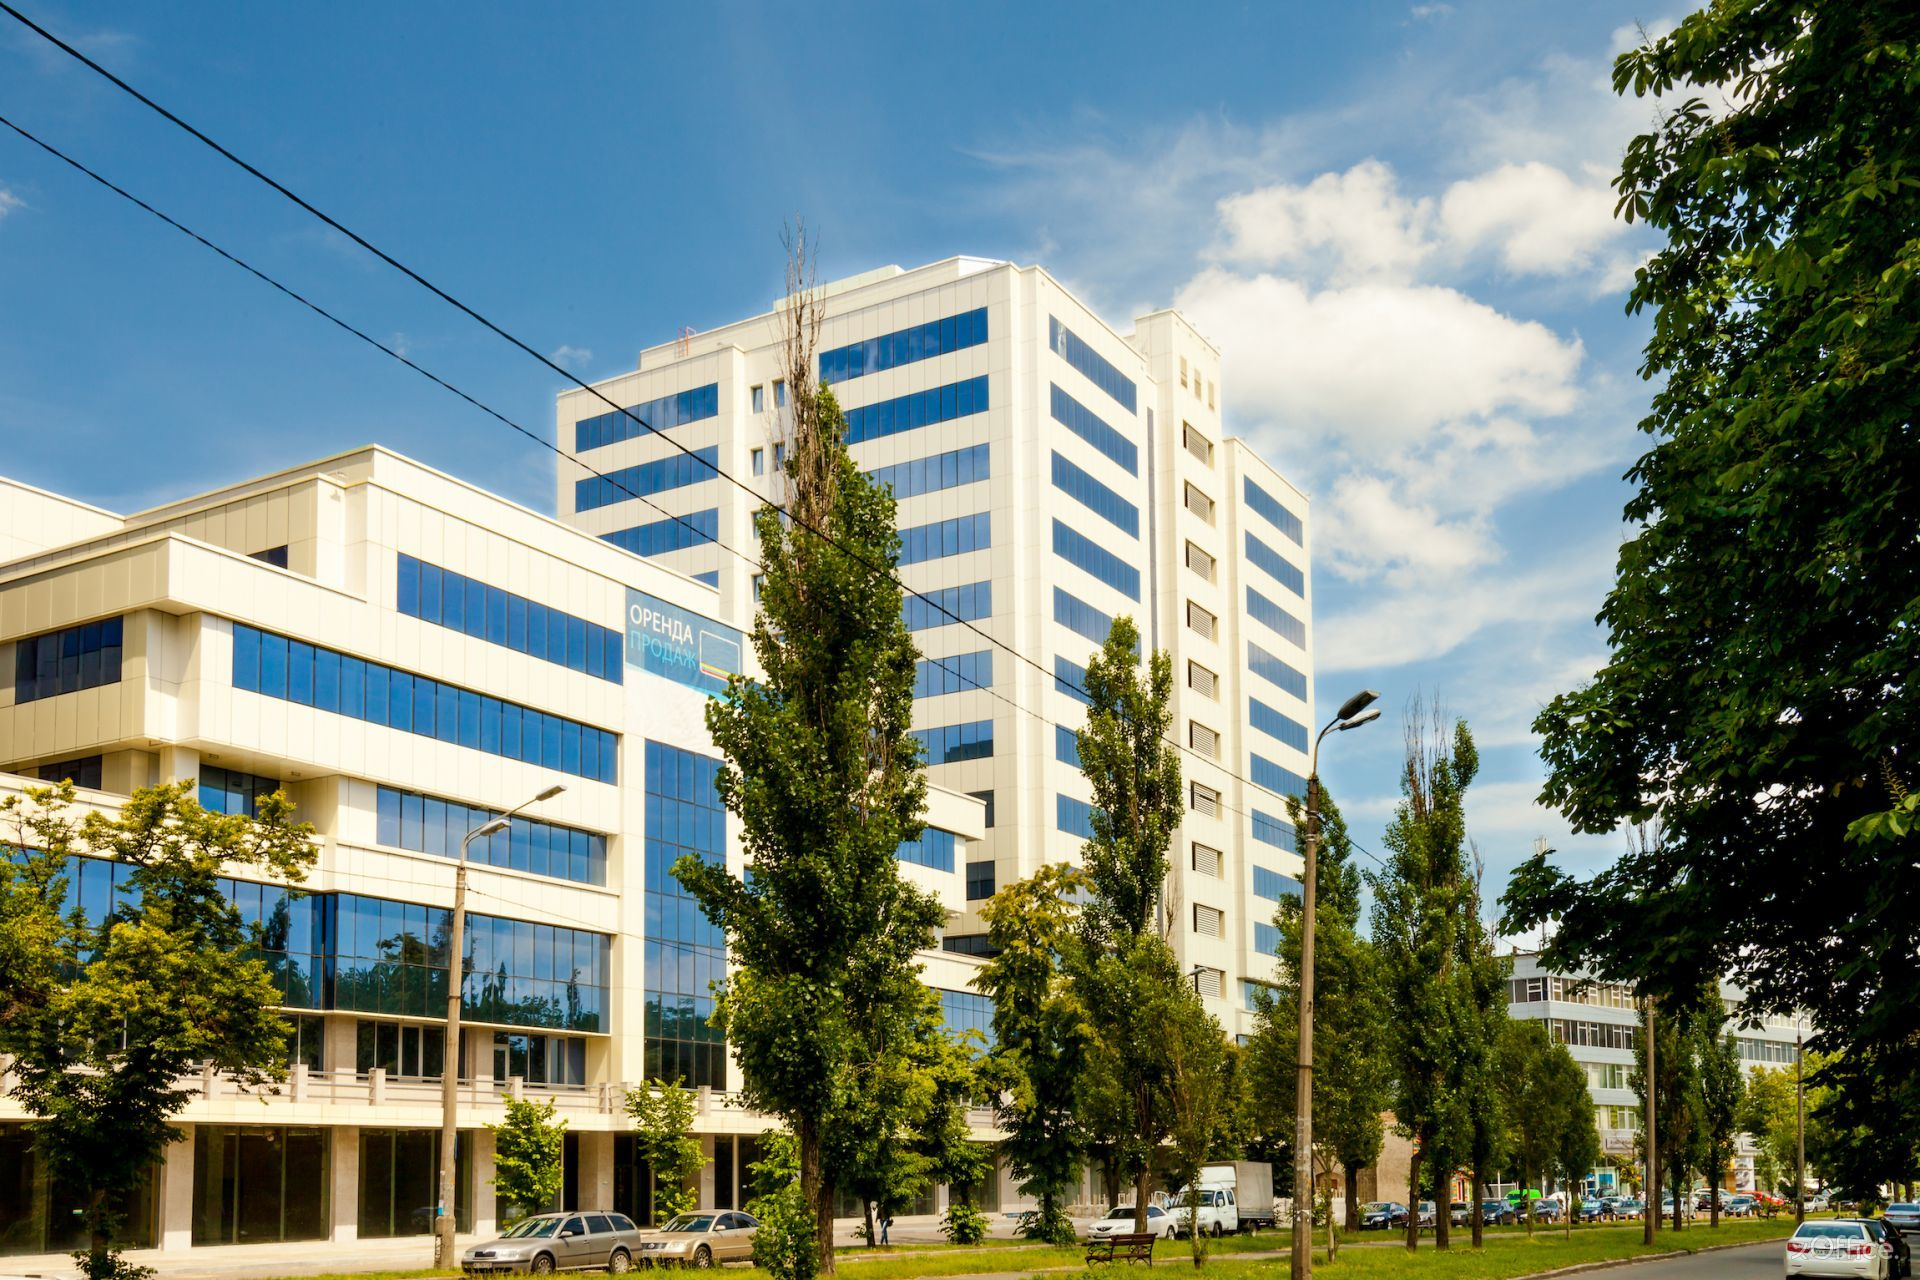 prestige_center_vatslava_gavela_6_xoffice_1